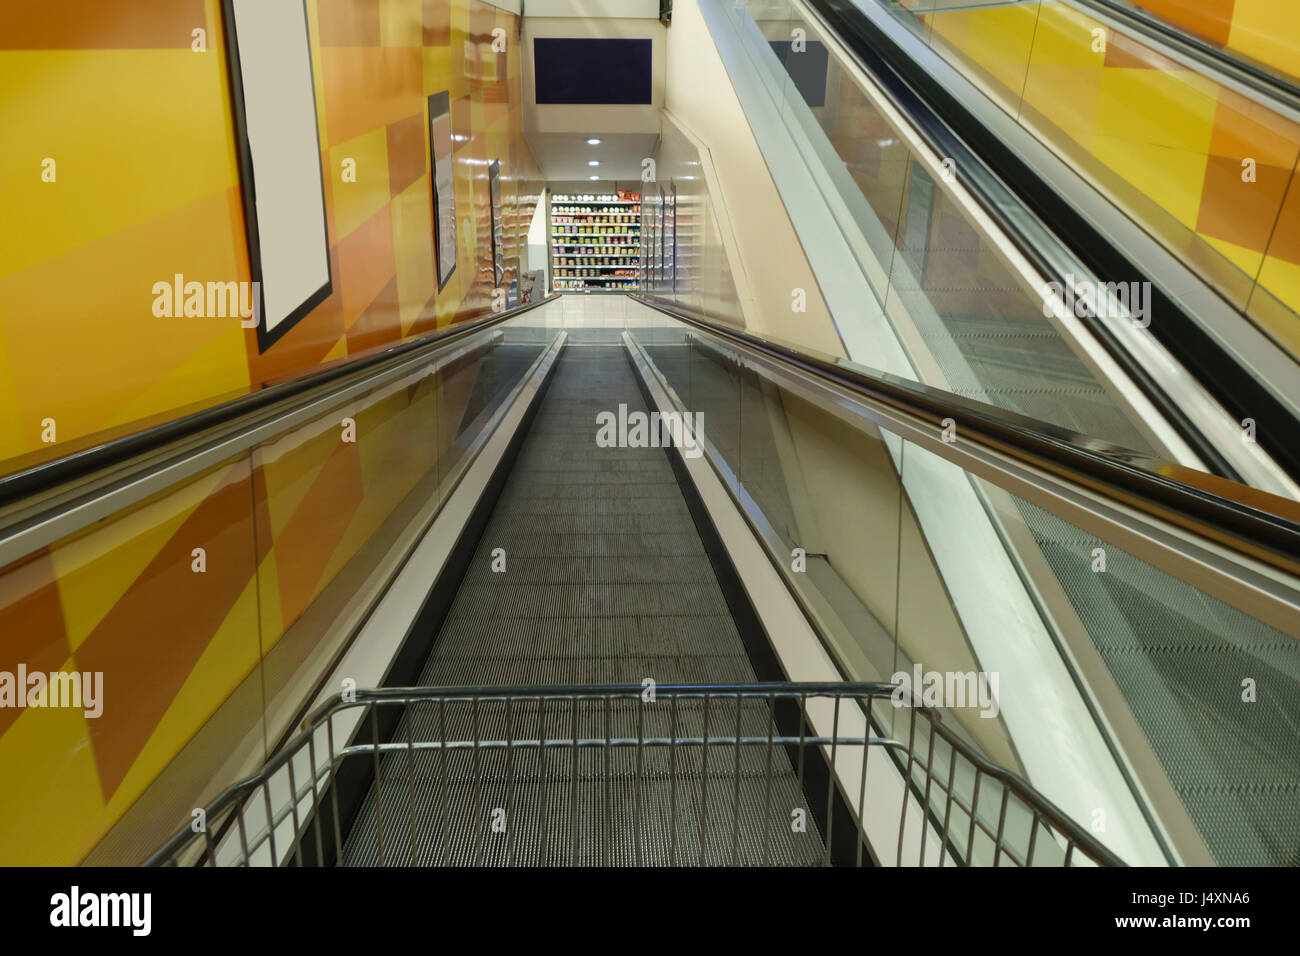 Conveyor belt and shopping cart in a supermarket entrance - Stock Image